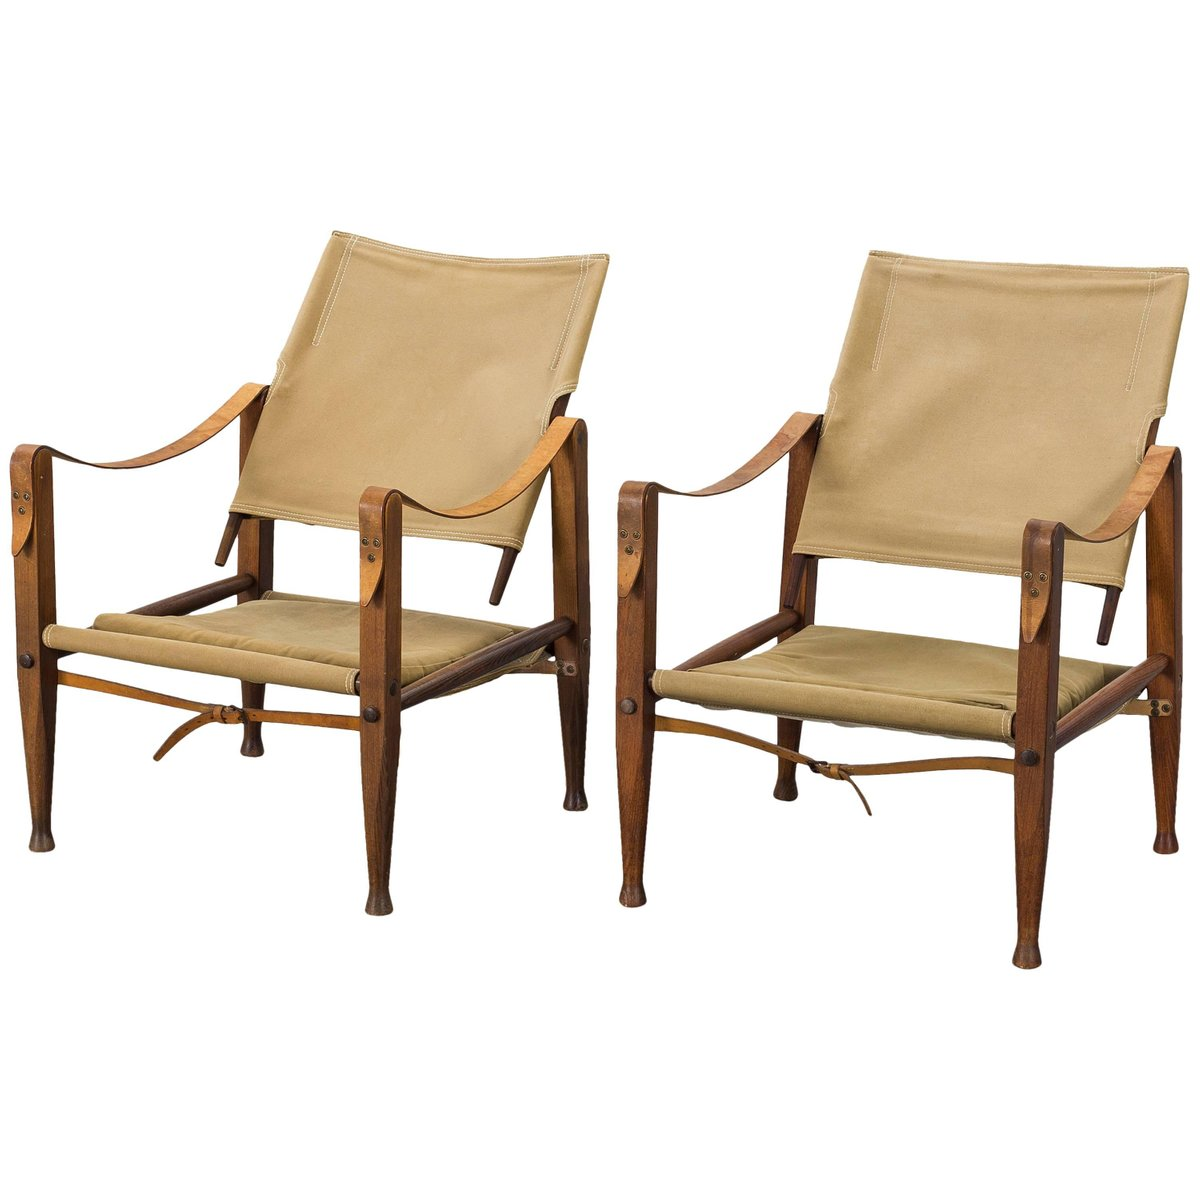 Safari Chairs Vintage Safari Chairs In Canvas By Kaare Klint For Rud Rasmussen Set Of 2